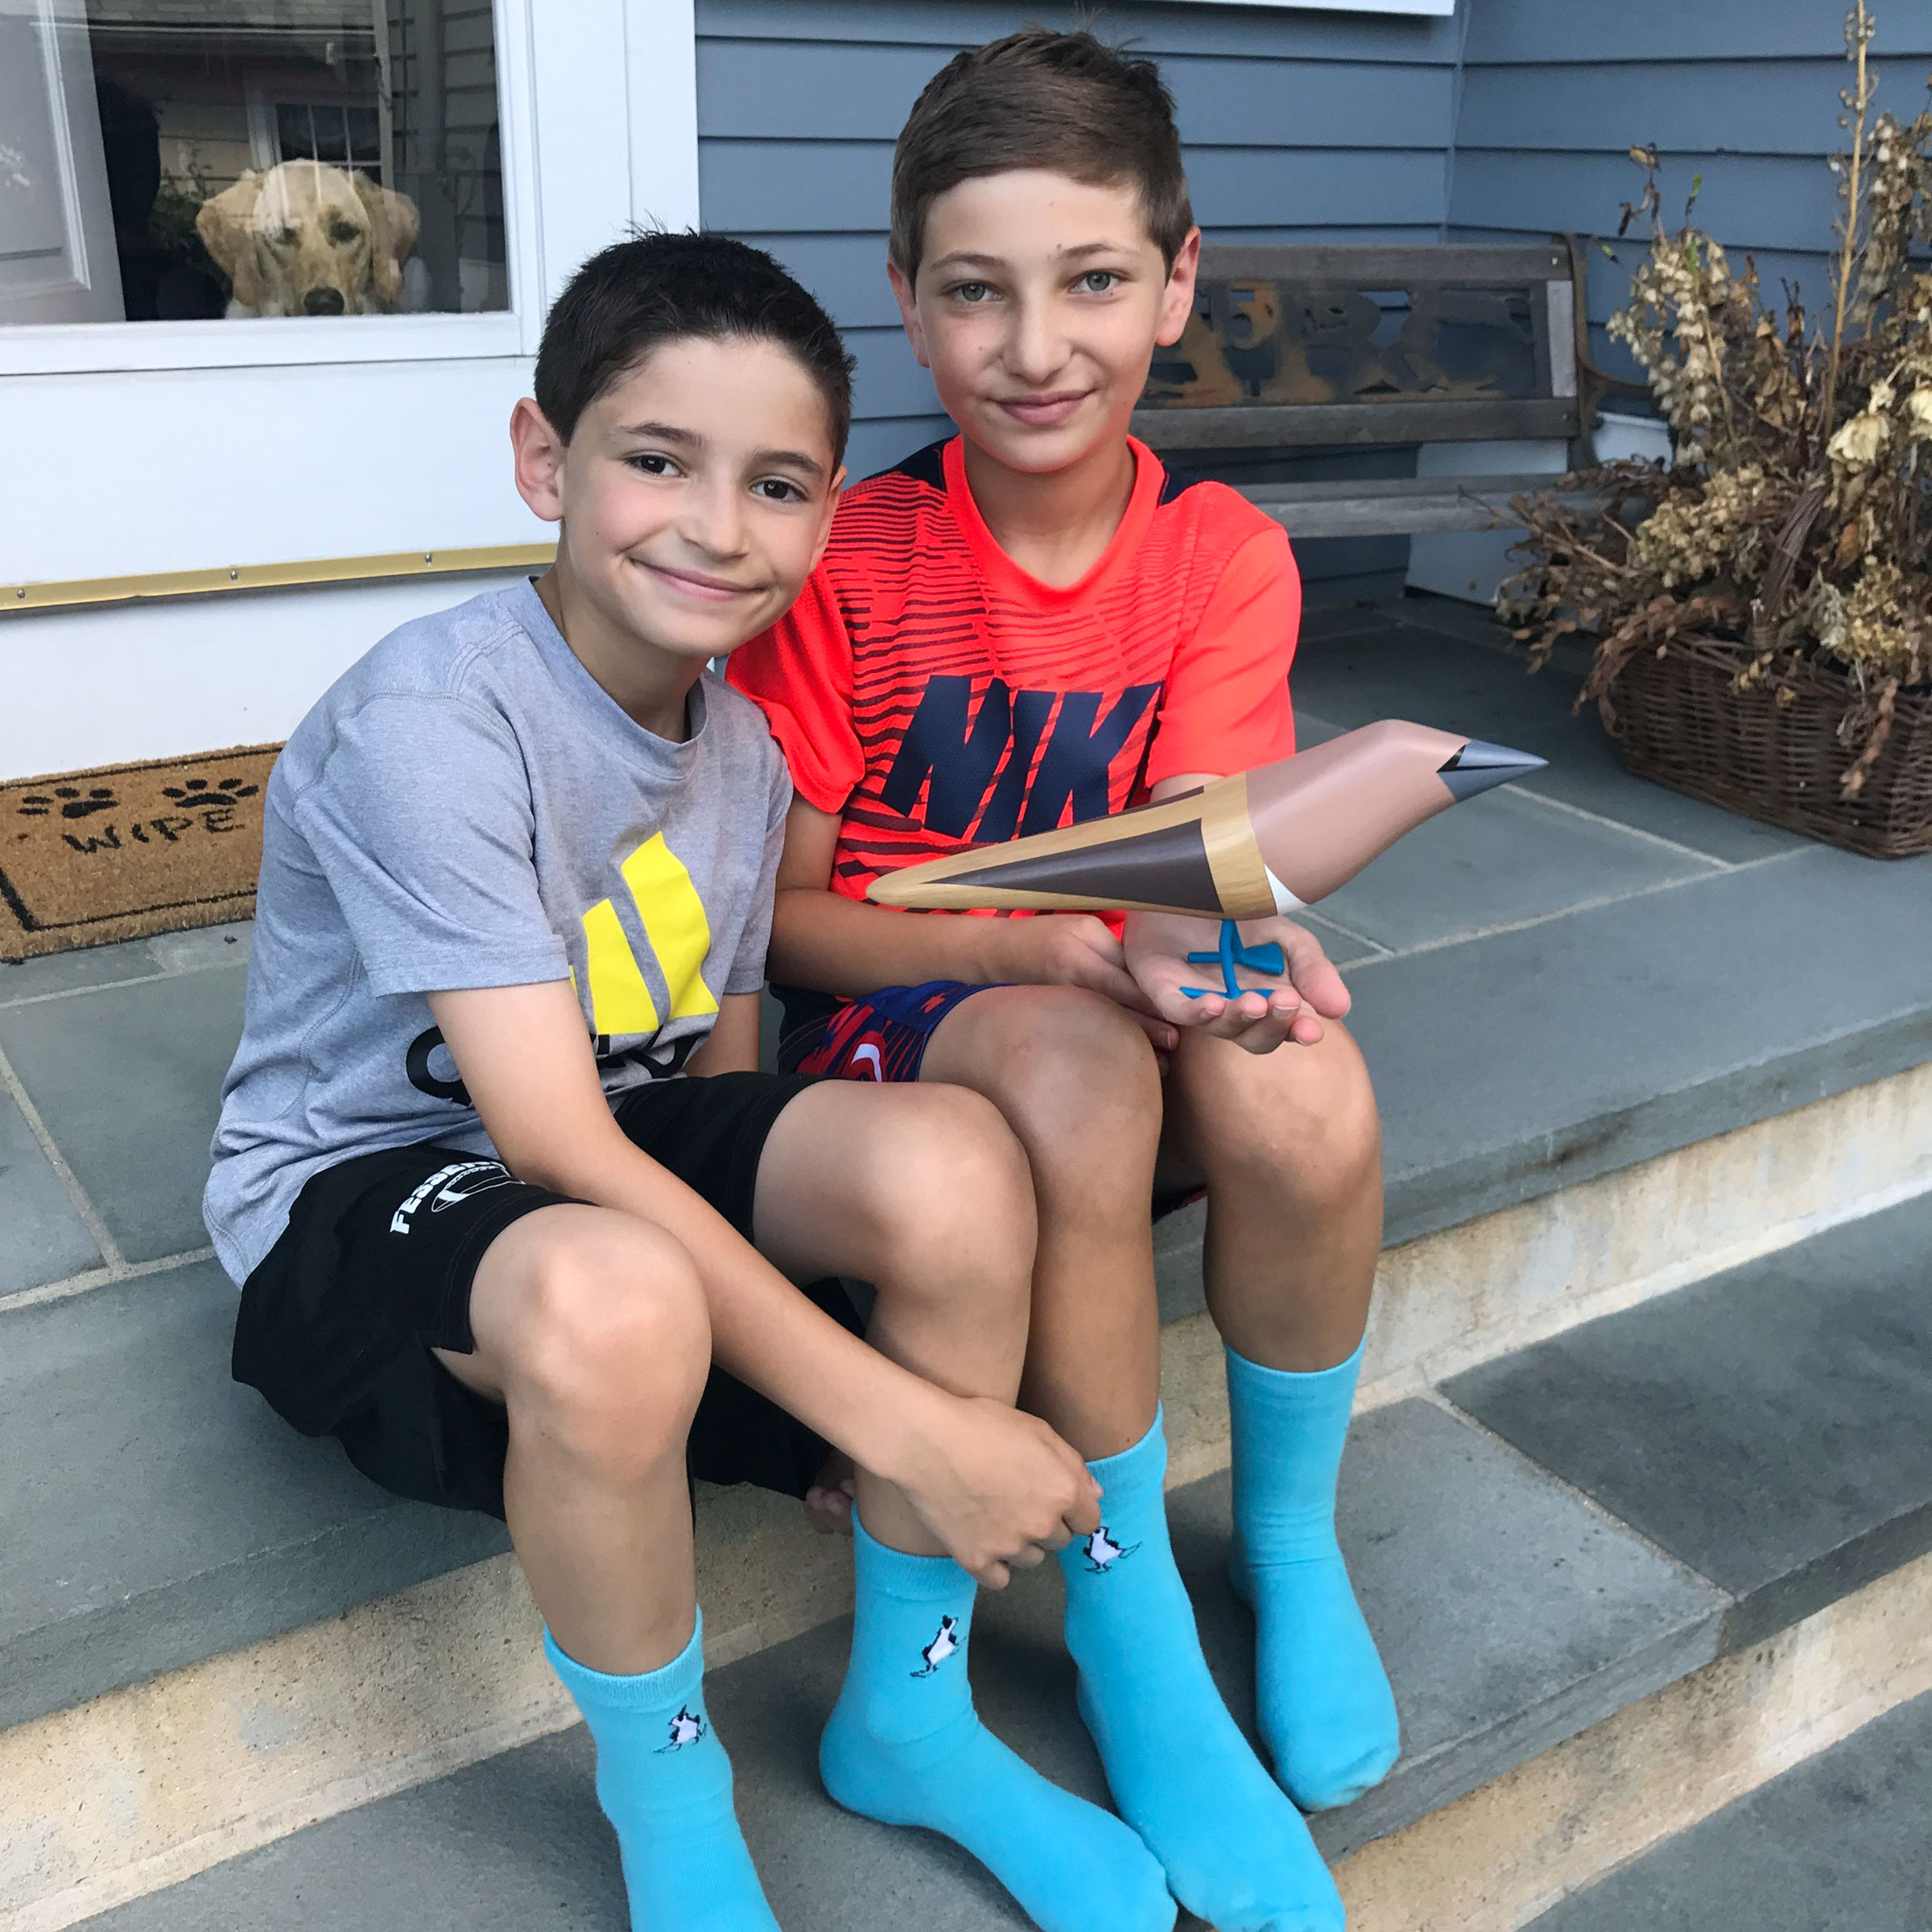 Matthew (left) and Will (right) Gladstone, founders of the Blue Feet Foundation. Will is holding a sustainable sculpture gifted to him by Mexican artist Davit Nava. Courtesy of Will Gladstone